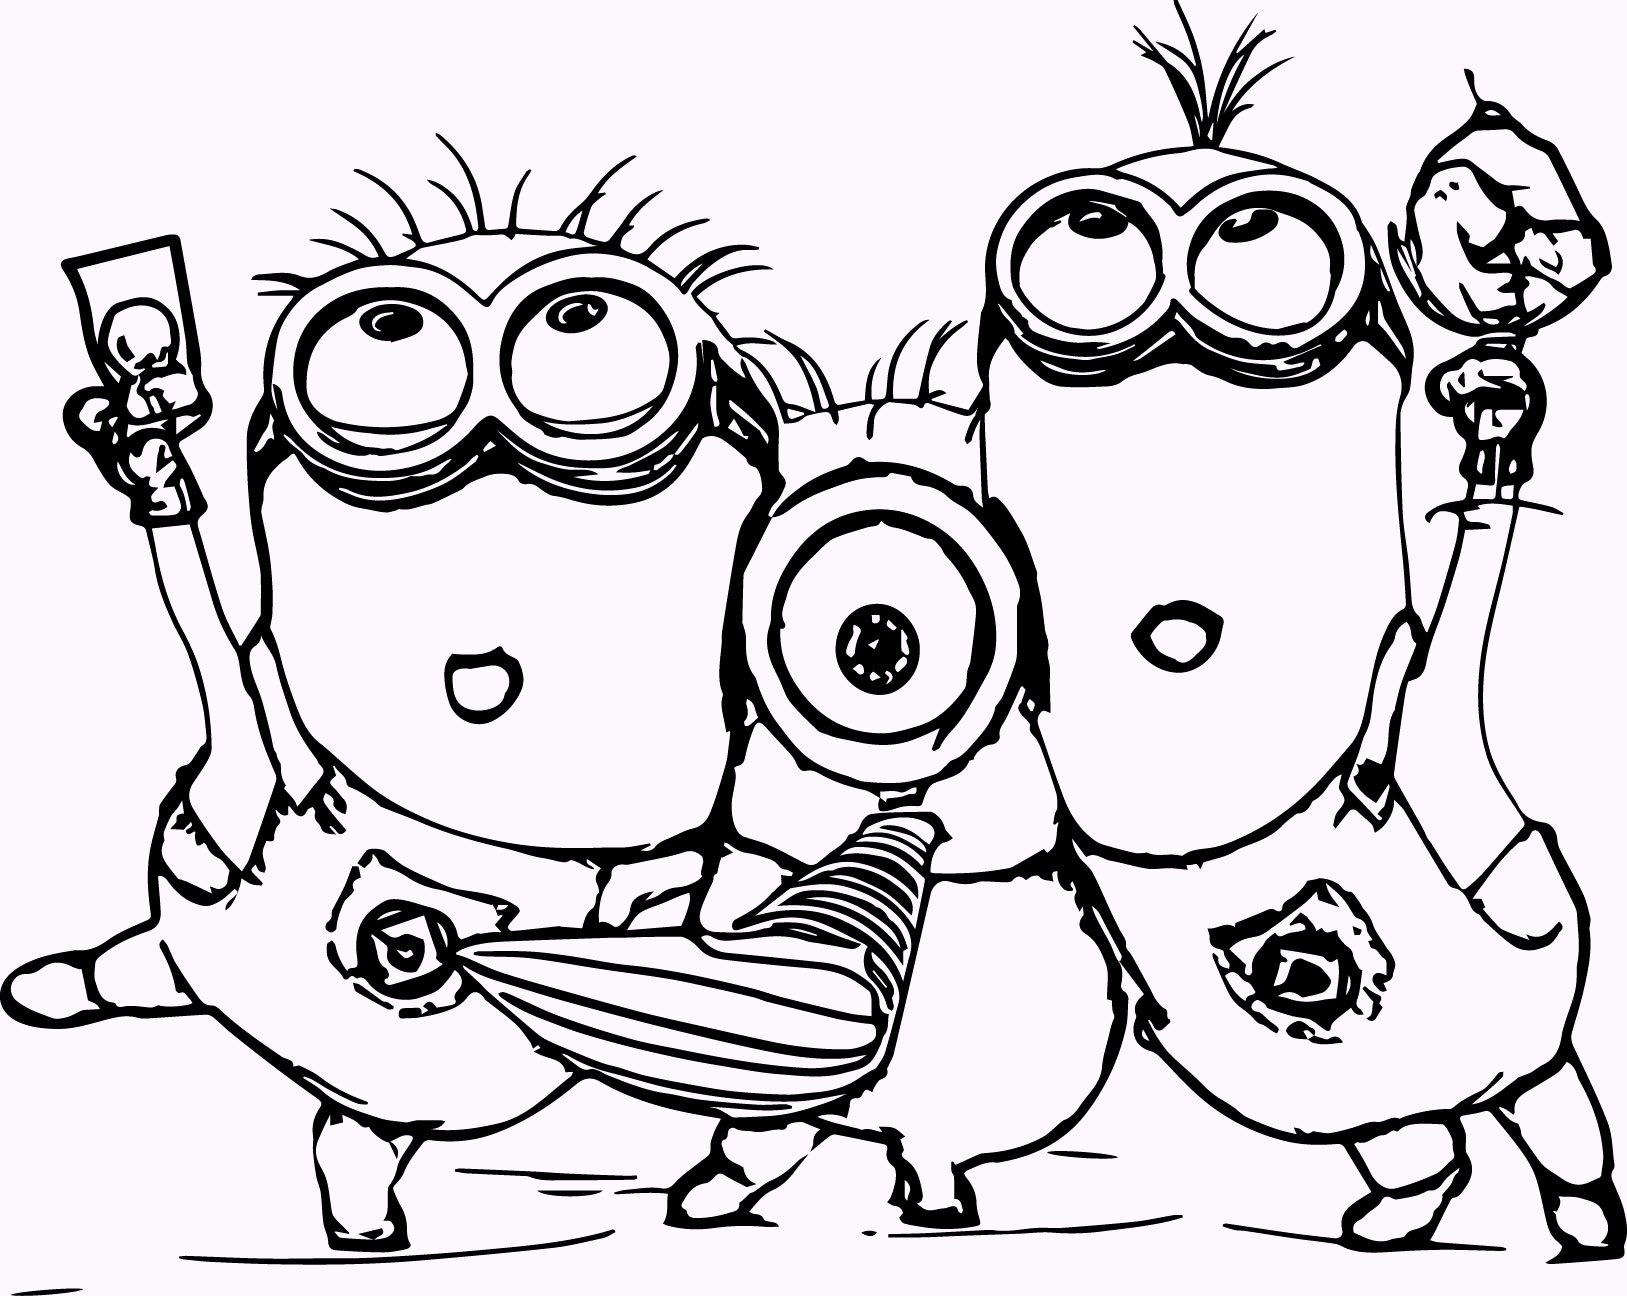 11 Cute Minions Coloring Pages